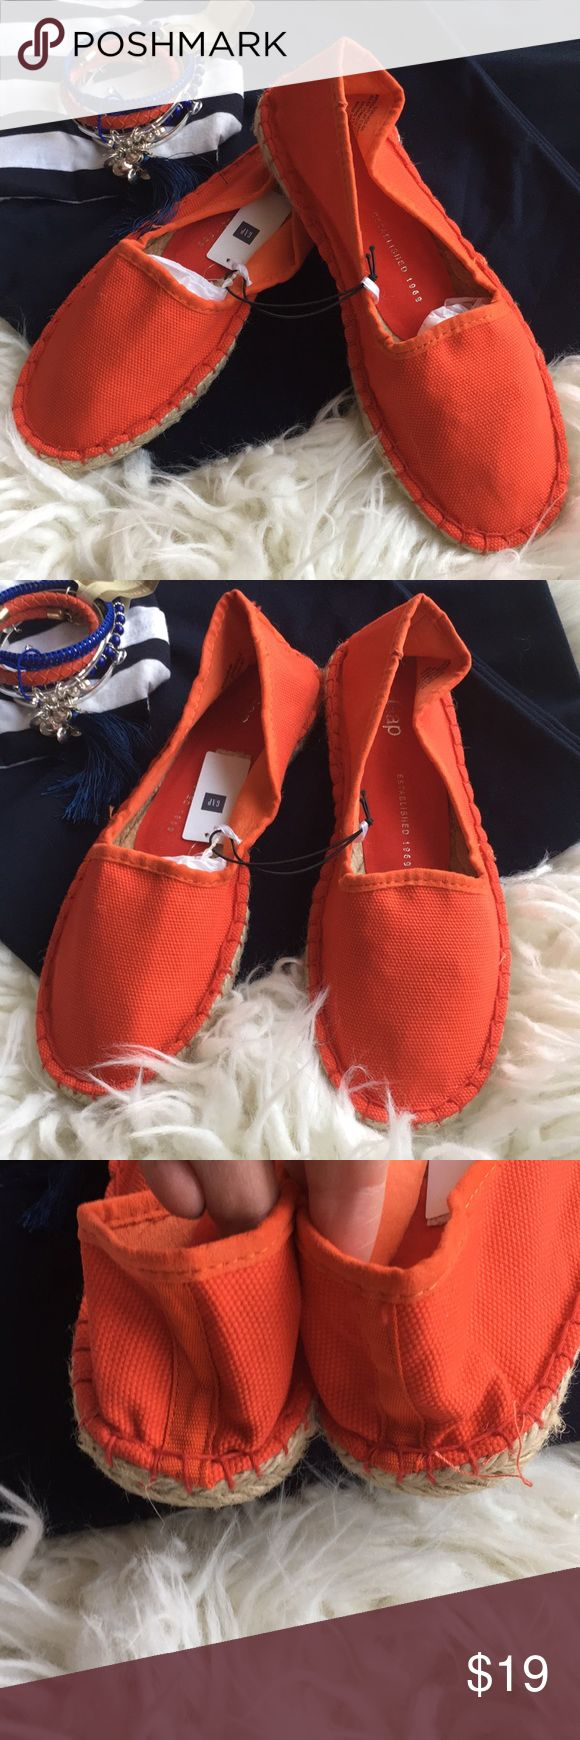 NWT Gap Dark Orange Espadrilles Sz 7 NWT Gap Dark Orange Espadrilles. Sz 7. GAP Shoes Espadrilles